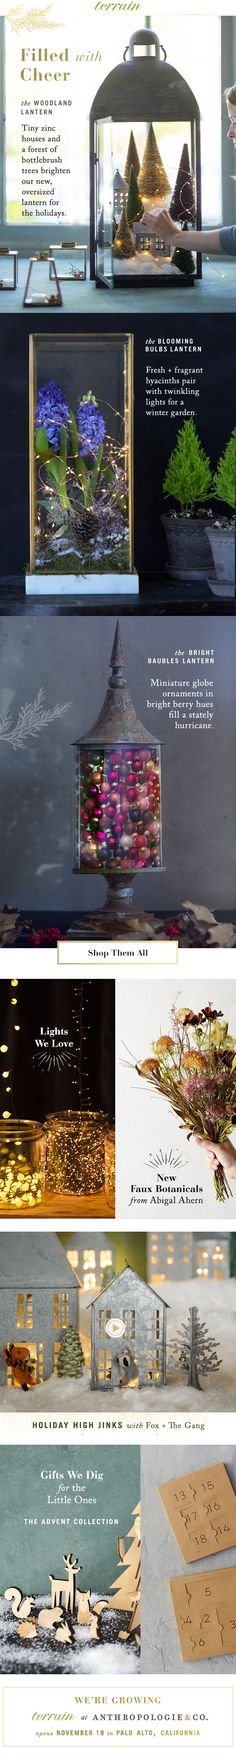 #Lanterns filled with cheer at #shopterrain November 11